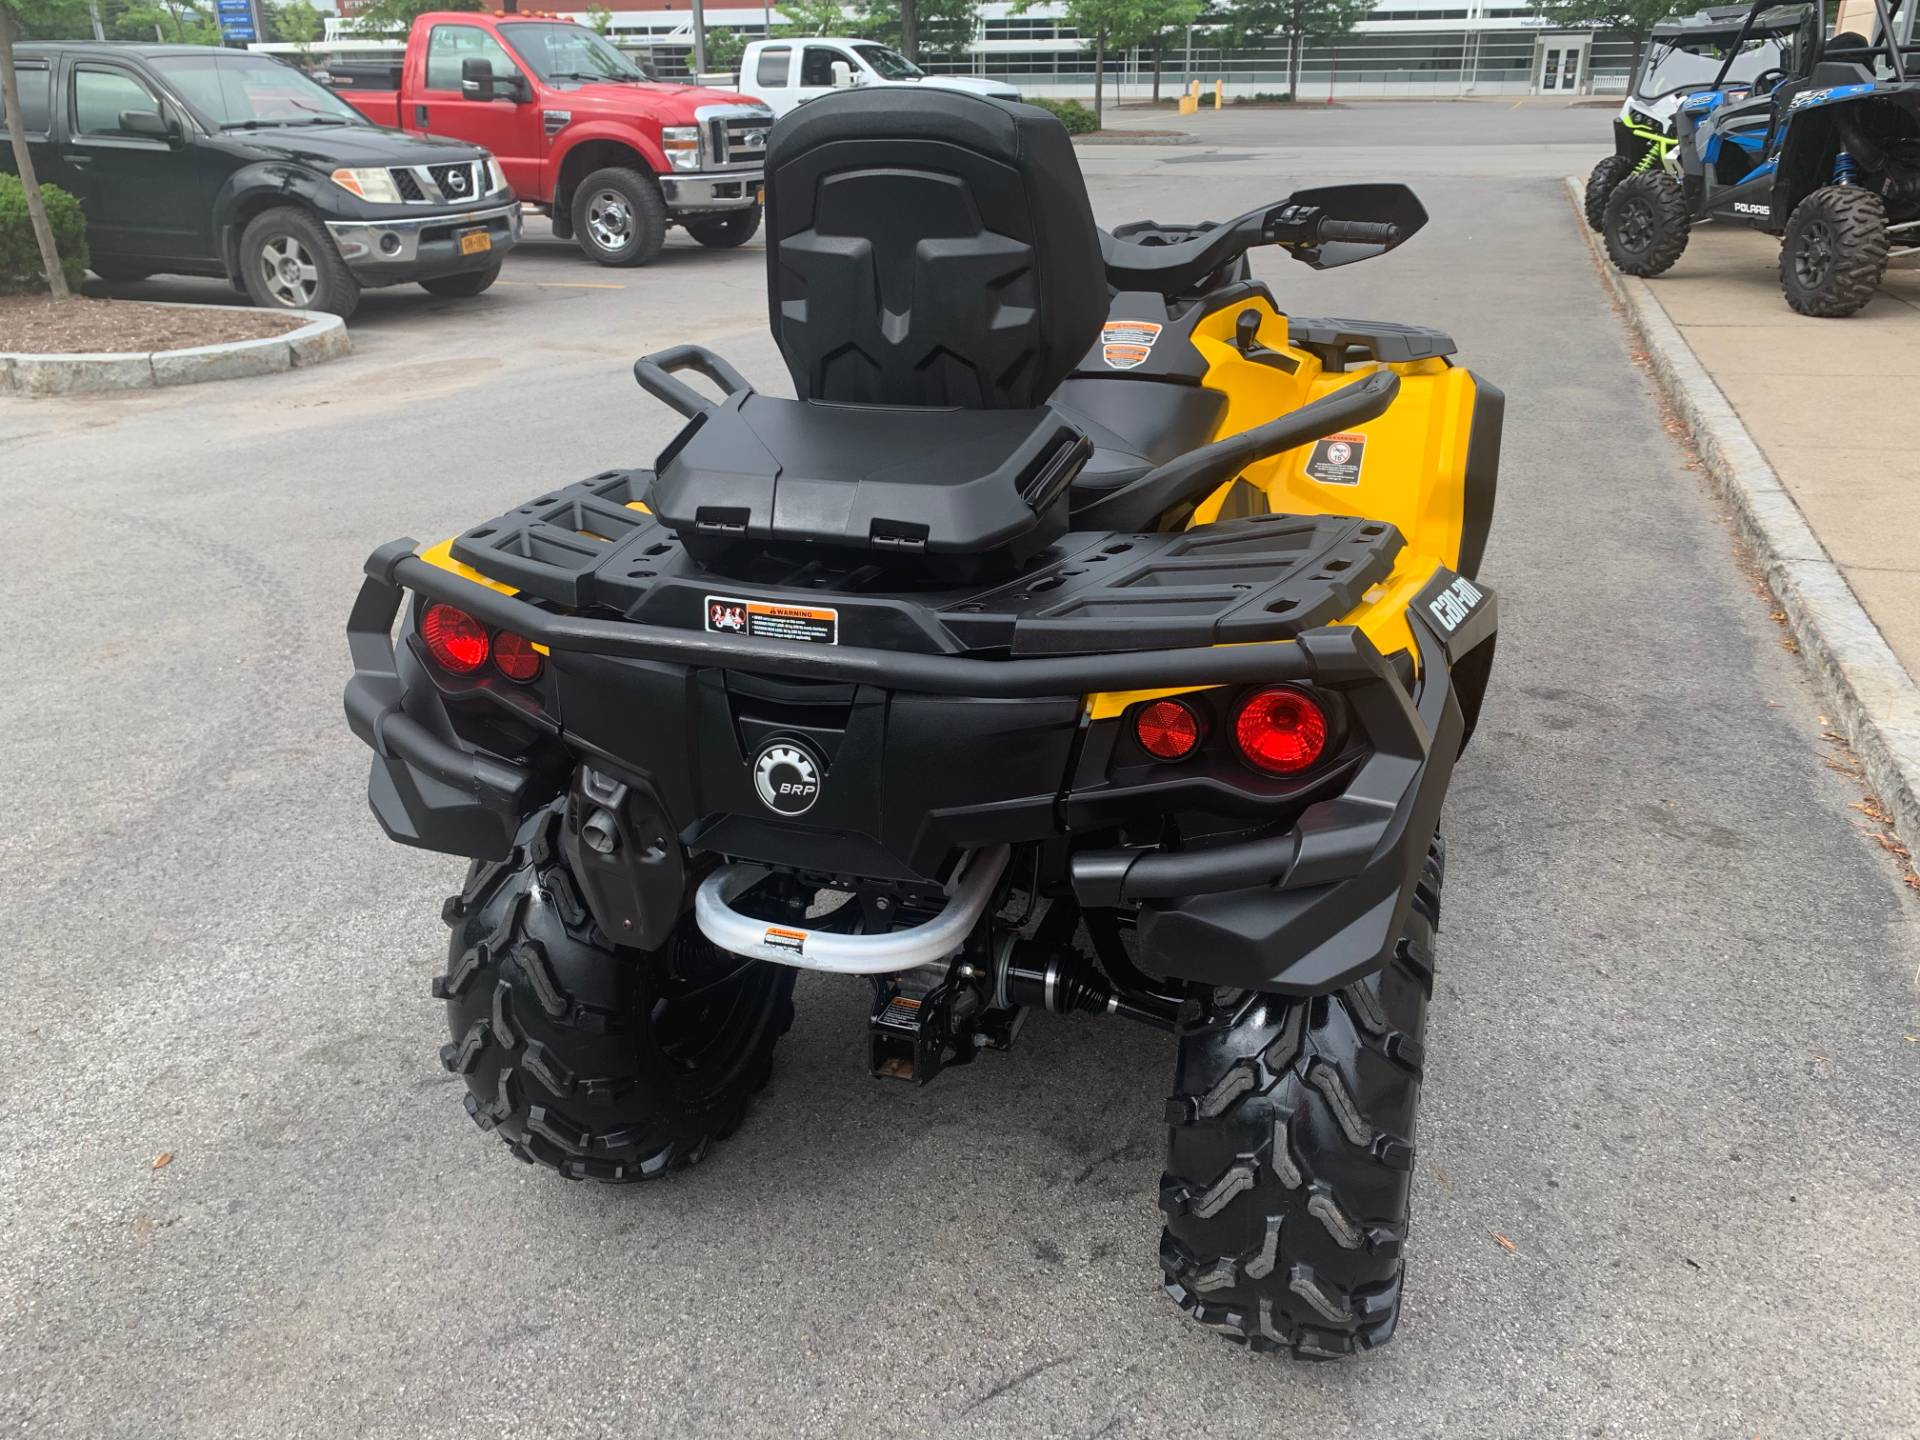 2016 Can-Am Outlander MAX XT 570 in Herkimer, New York - Photo 13